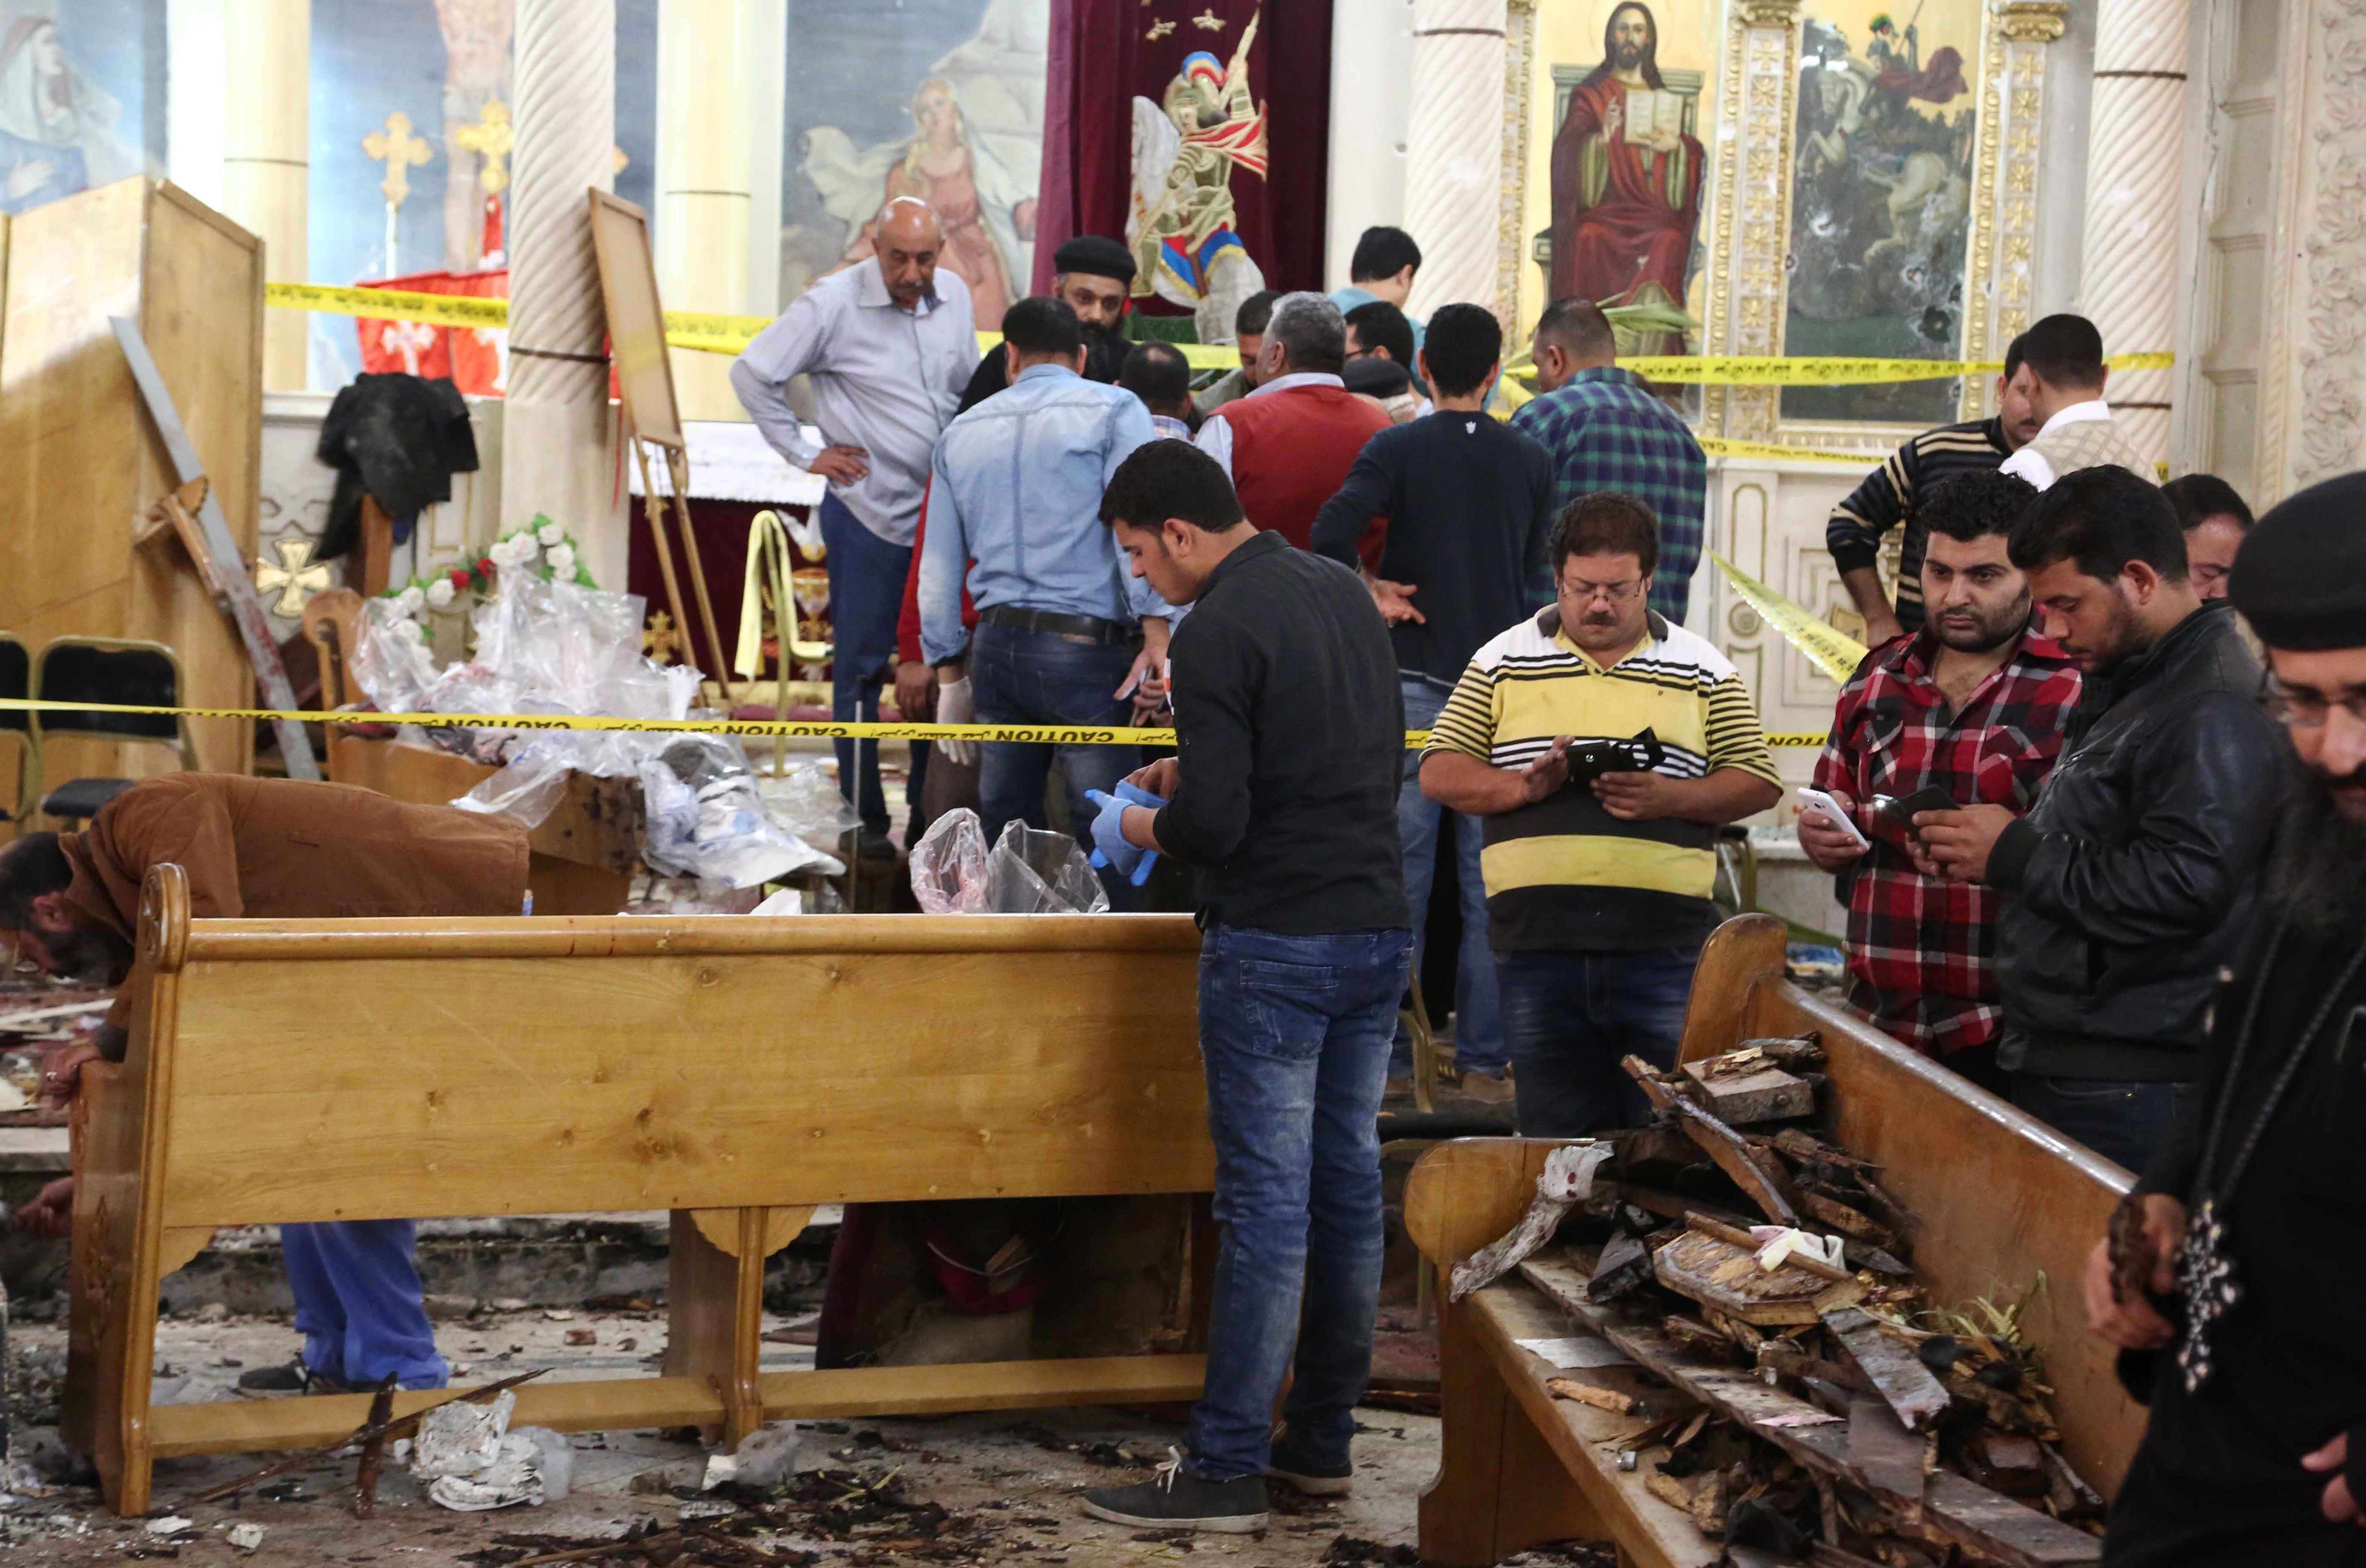 egypt coptic church bombings, egypt church bombings isis